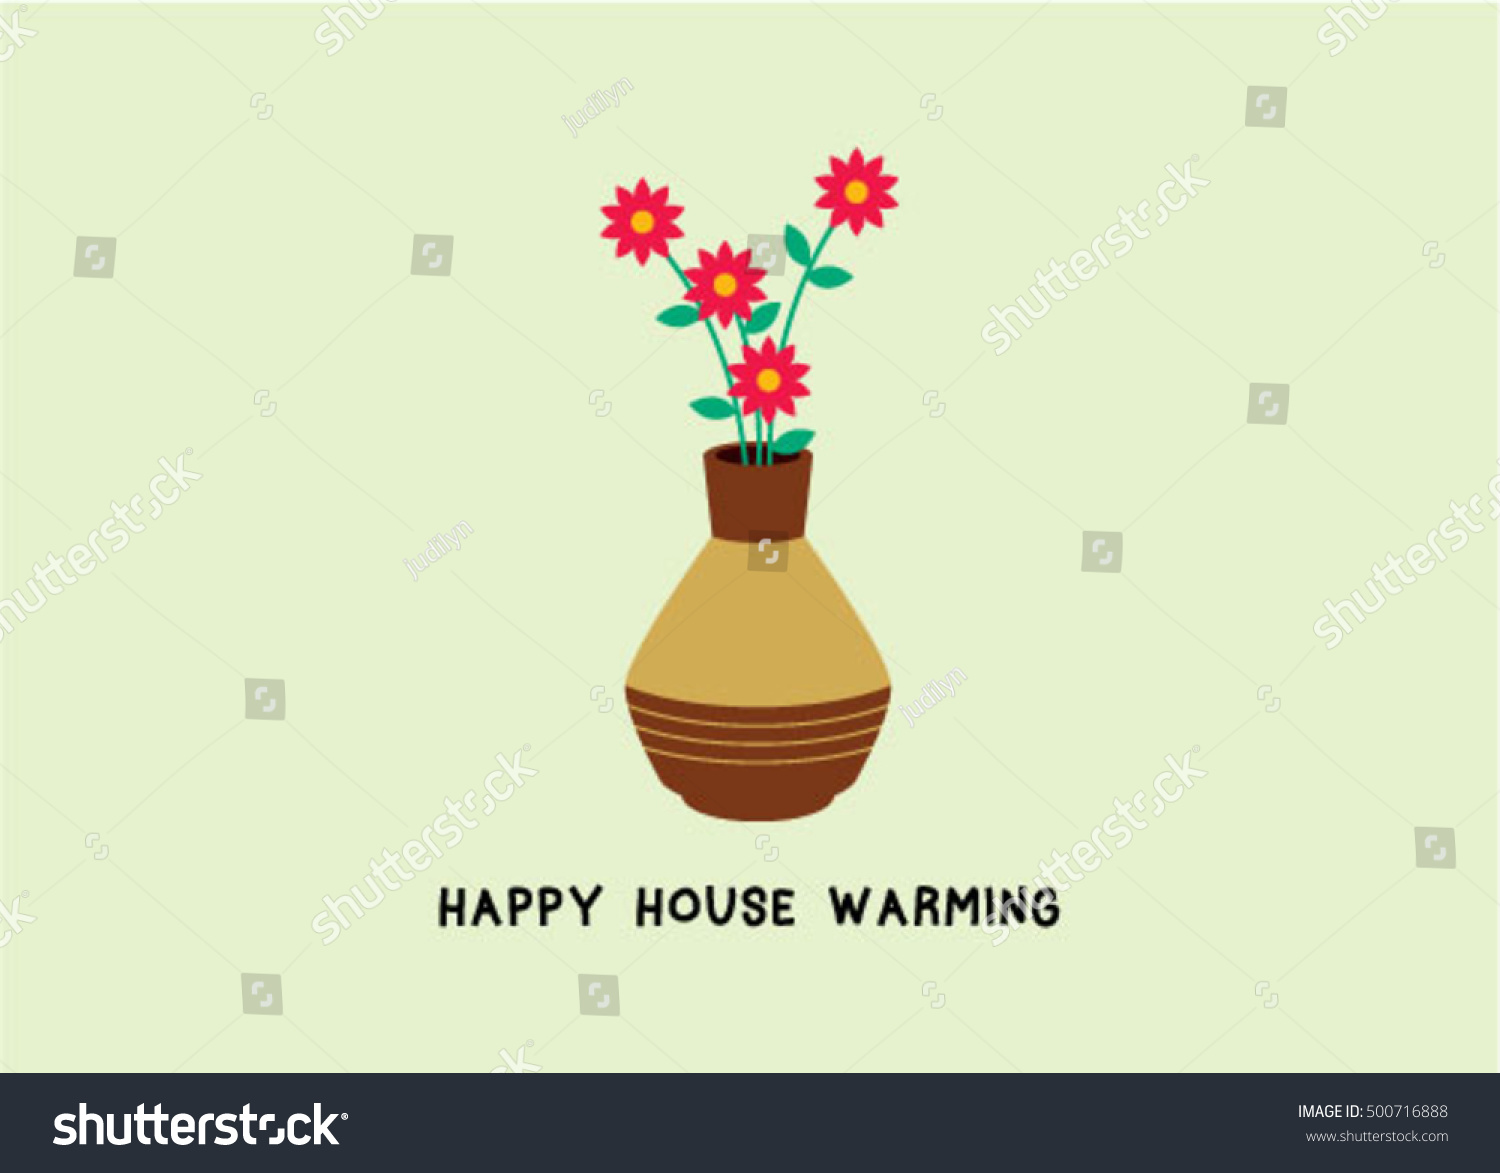 House warming greeting card plant graphic stock vector hd royalty house warming greeting card with plant graphic m4hsunfo